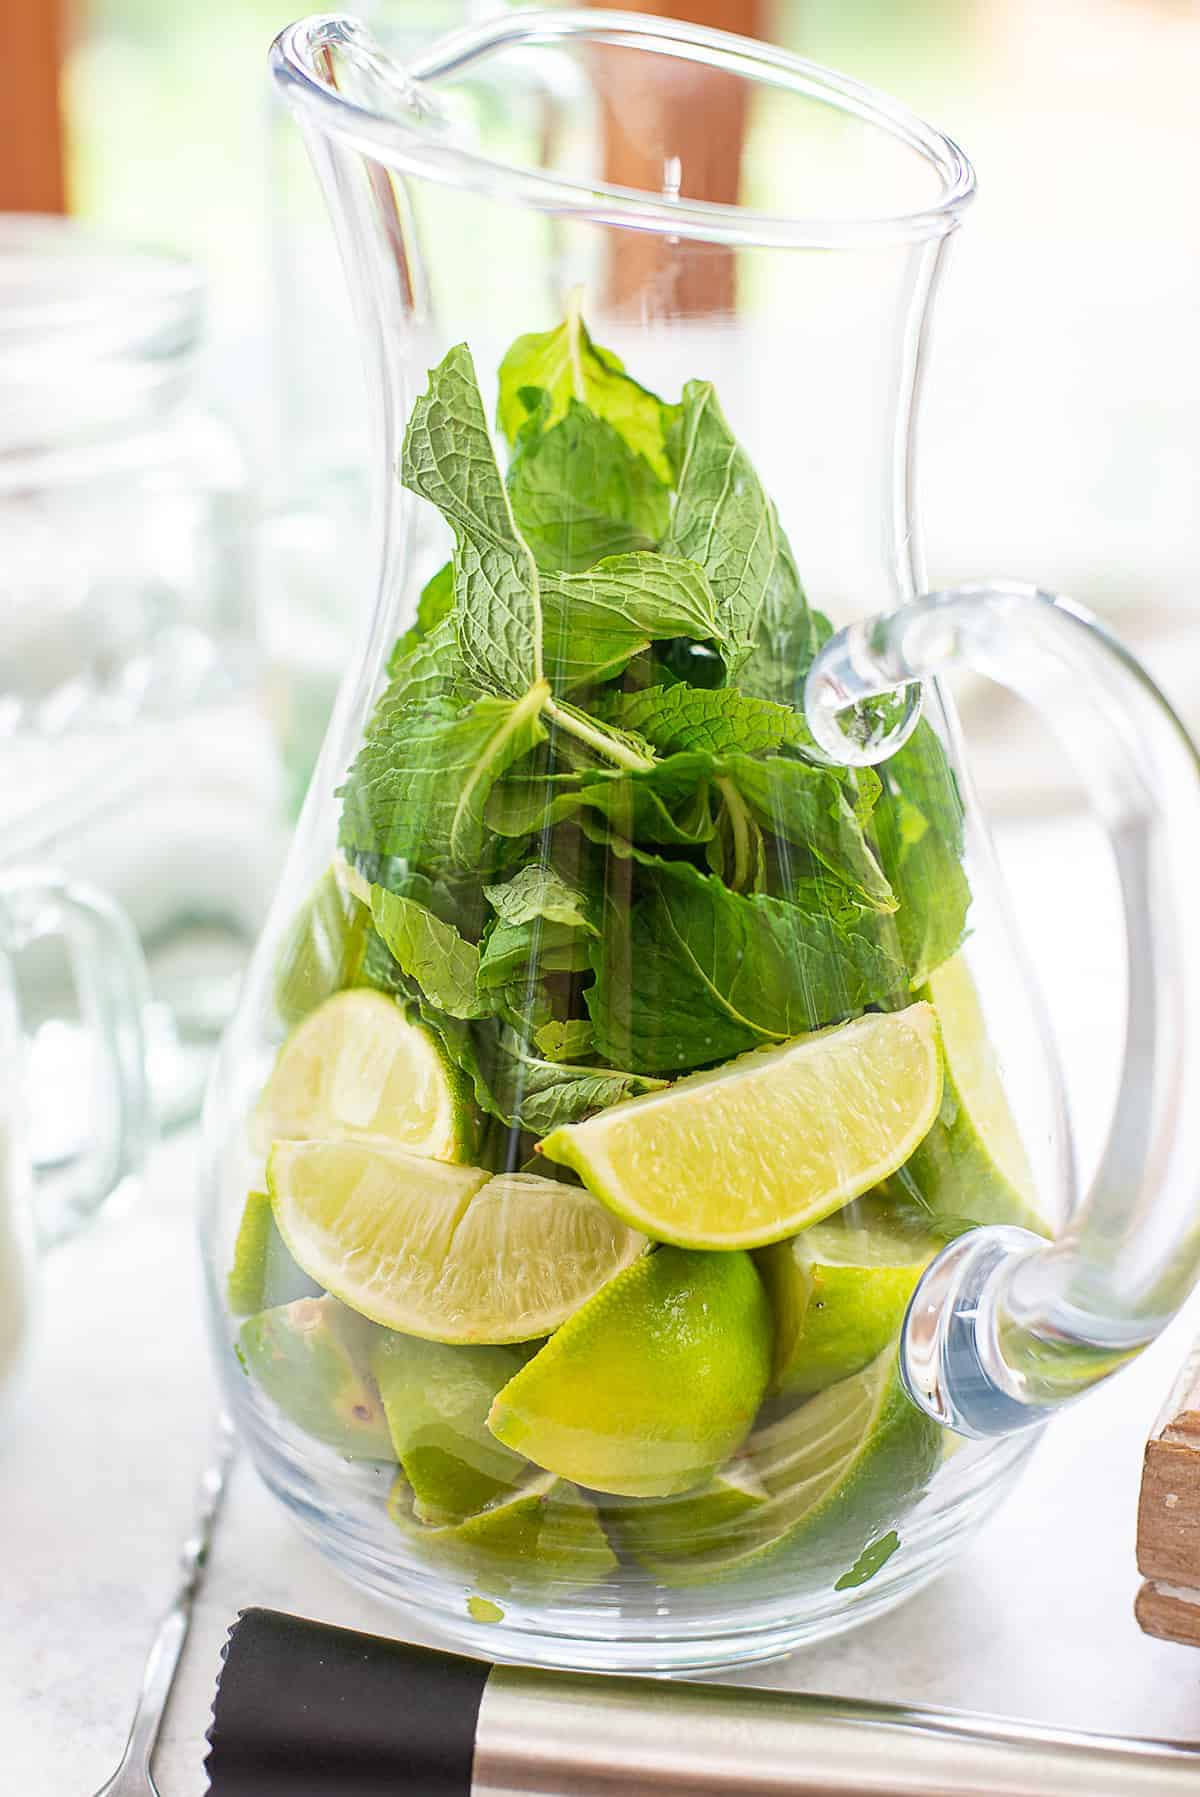 limes and mint in glass mitcher.